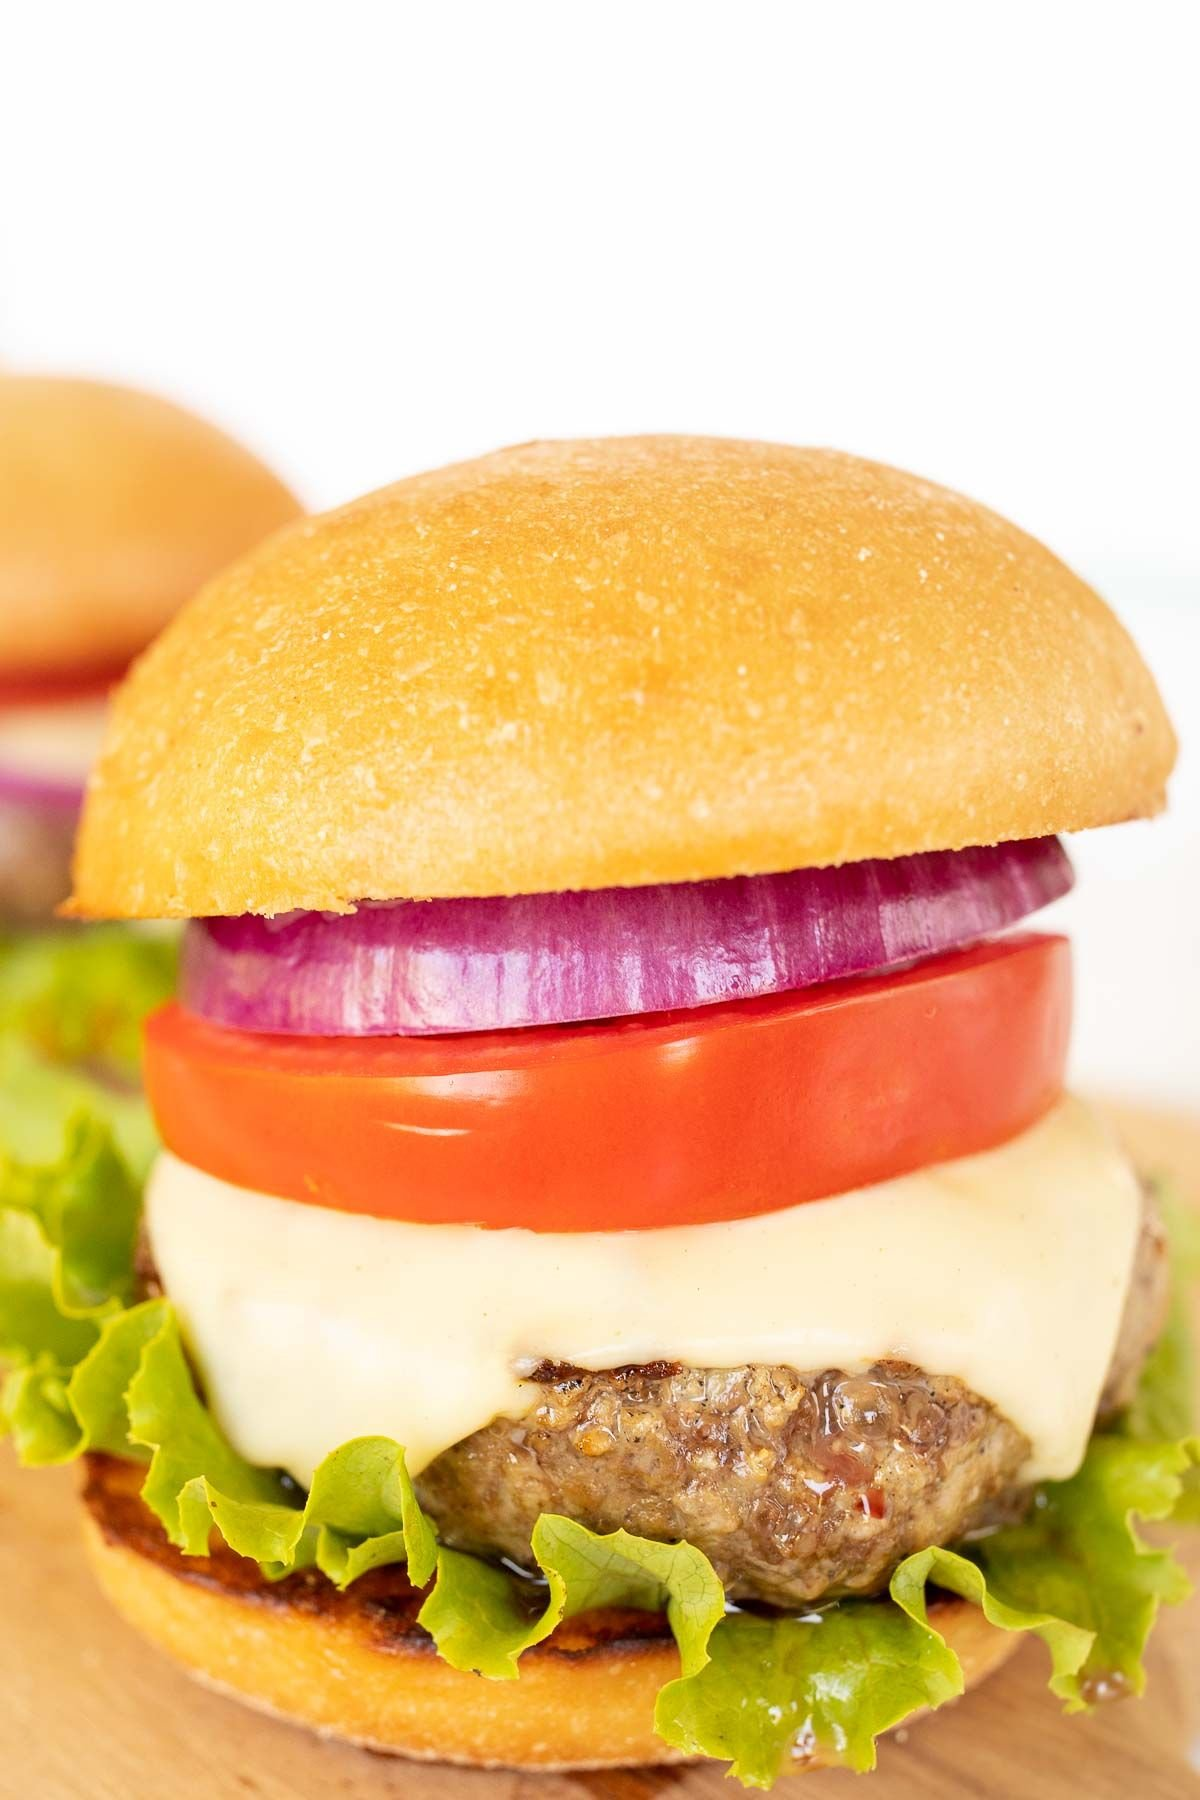 A hamburger stacked with lettuce, tomato, cheese and red onion.